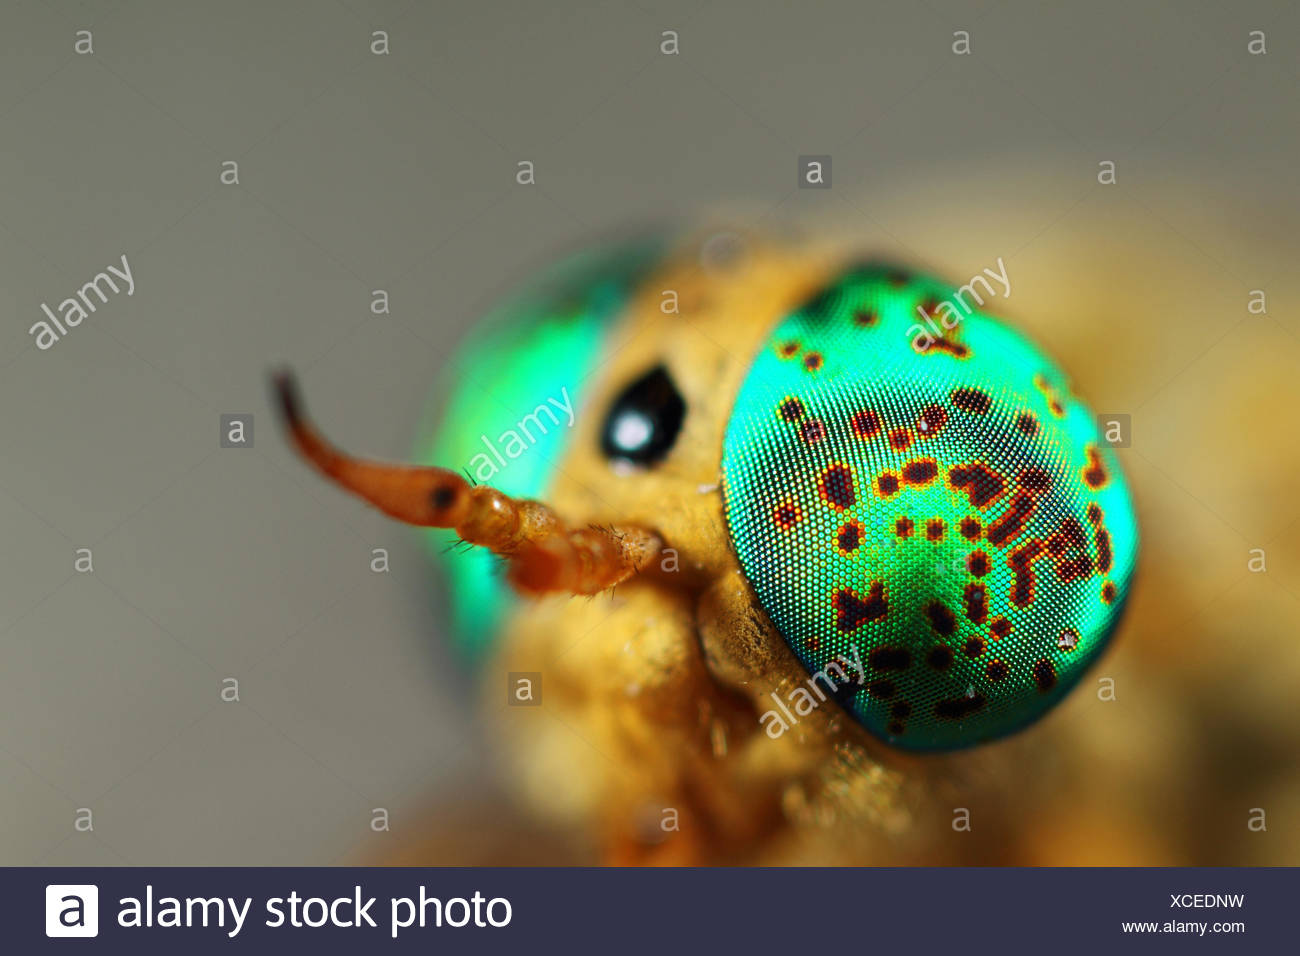 Silvius alpinus, a species of horsefly, with identical emerald green patches on the compound eyes. - Stock Image